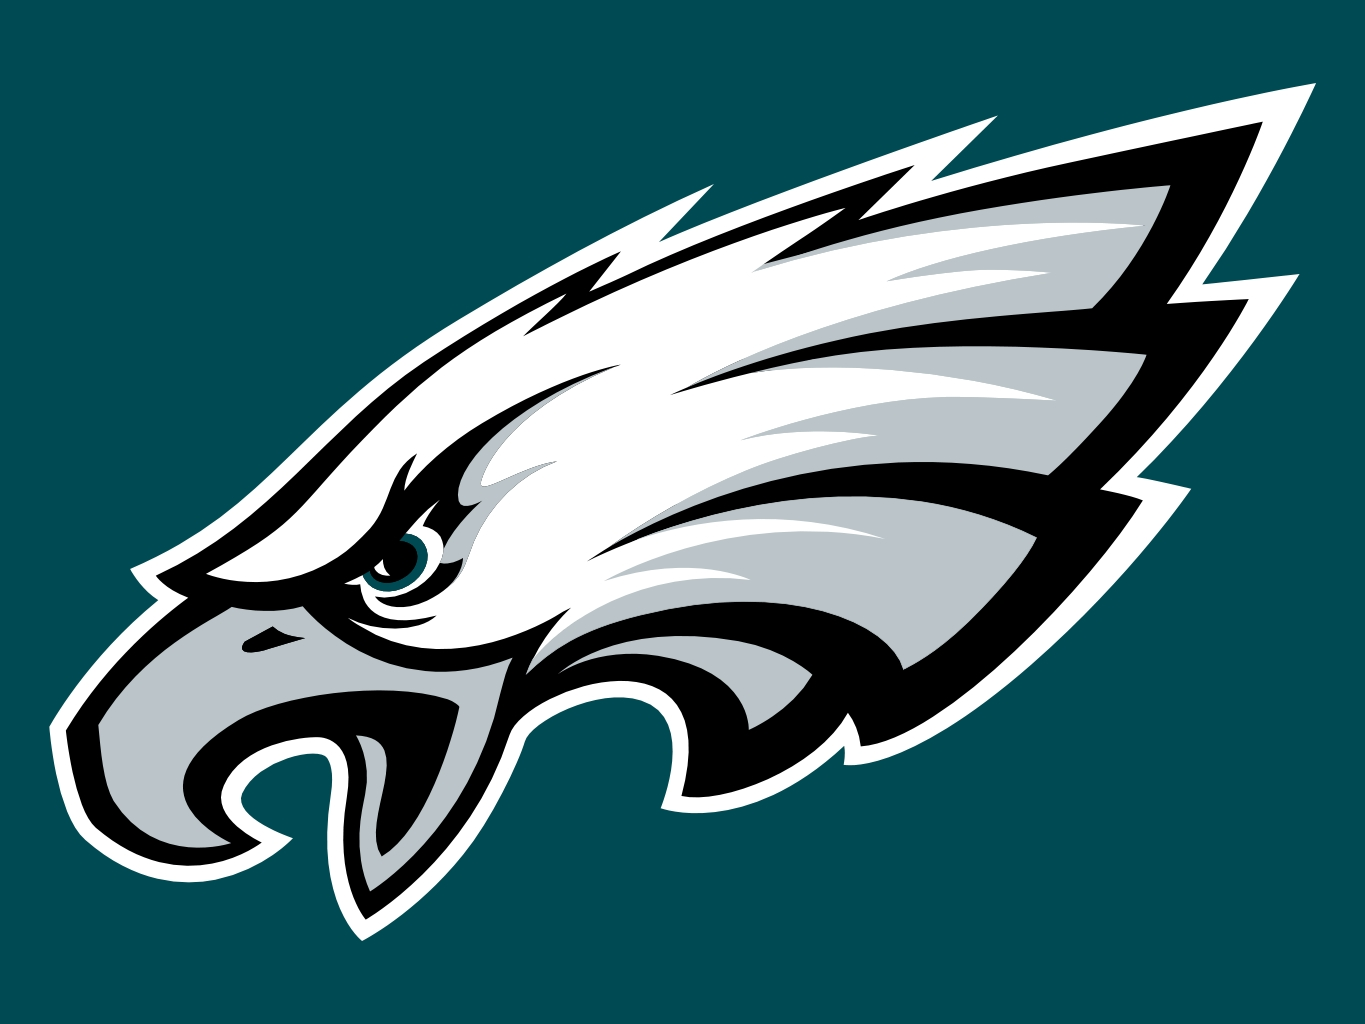 Philadelphia Eagles Wallpapers   Desktop Background Wallpapers 1365x1024